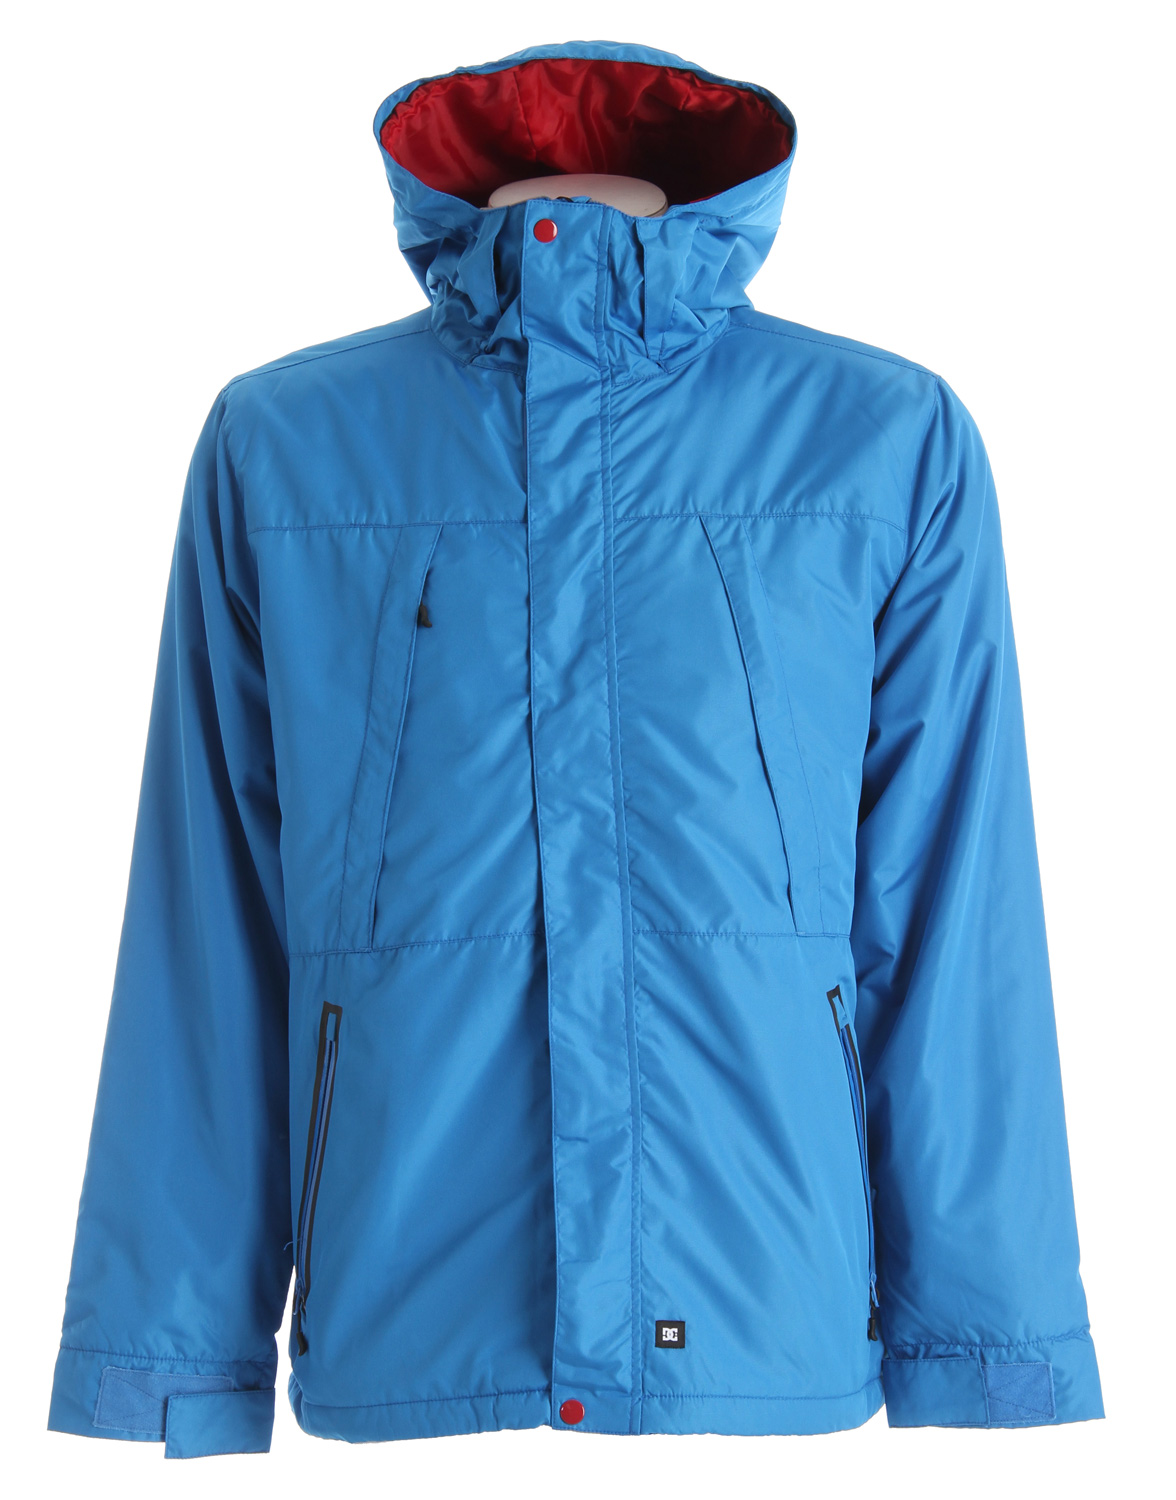 Key Features of the DC Alpine Jacket: Hooded poly ottoman shell Lightweight down fill and water resistant coating Hidden zip pockets 100% polyester - $69.95